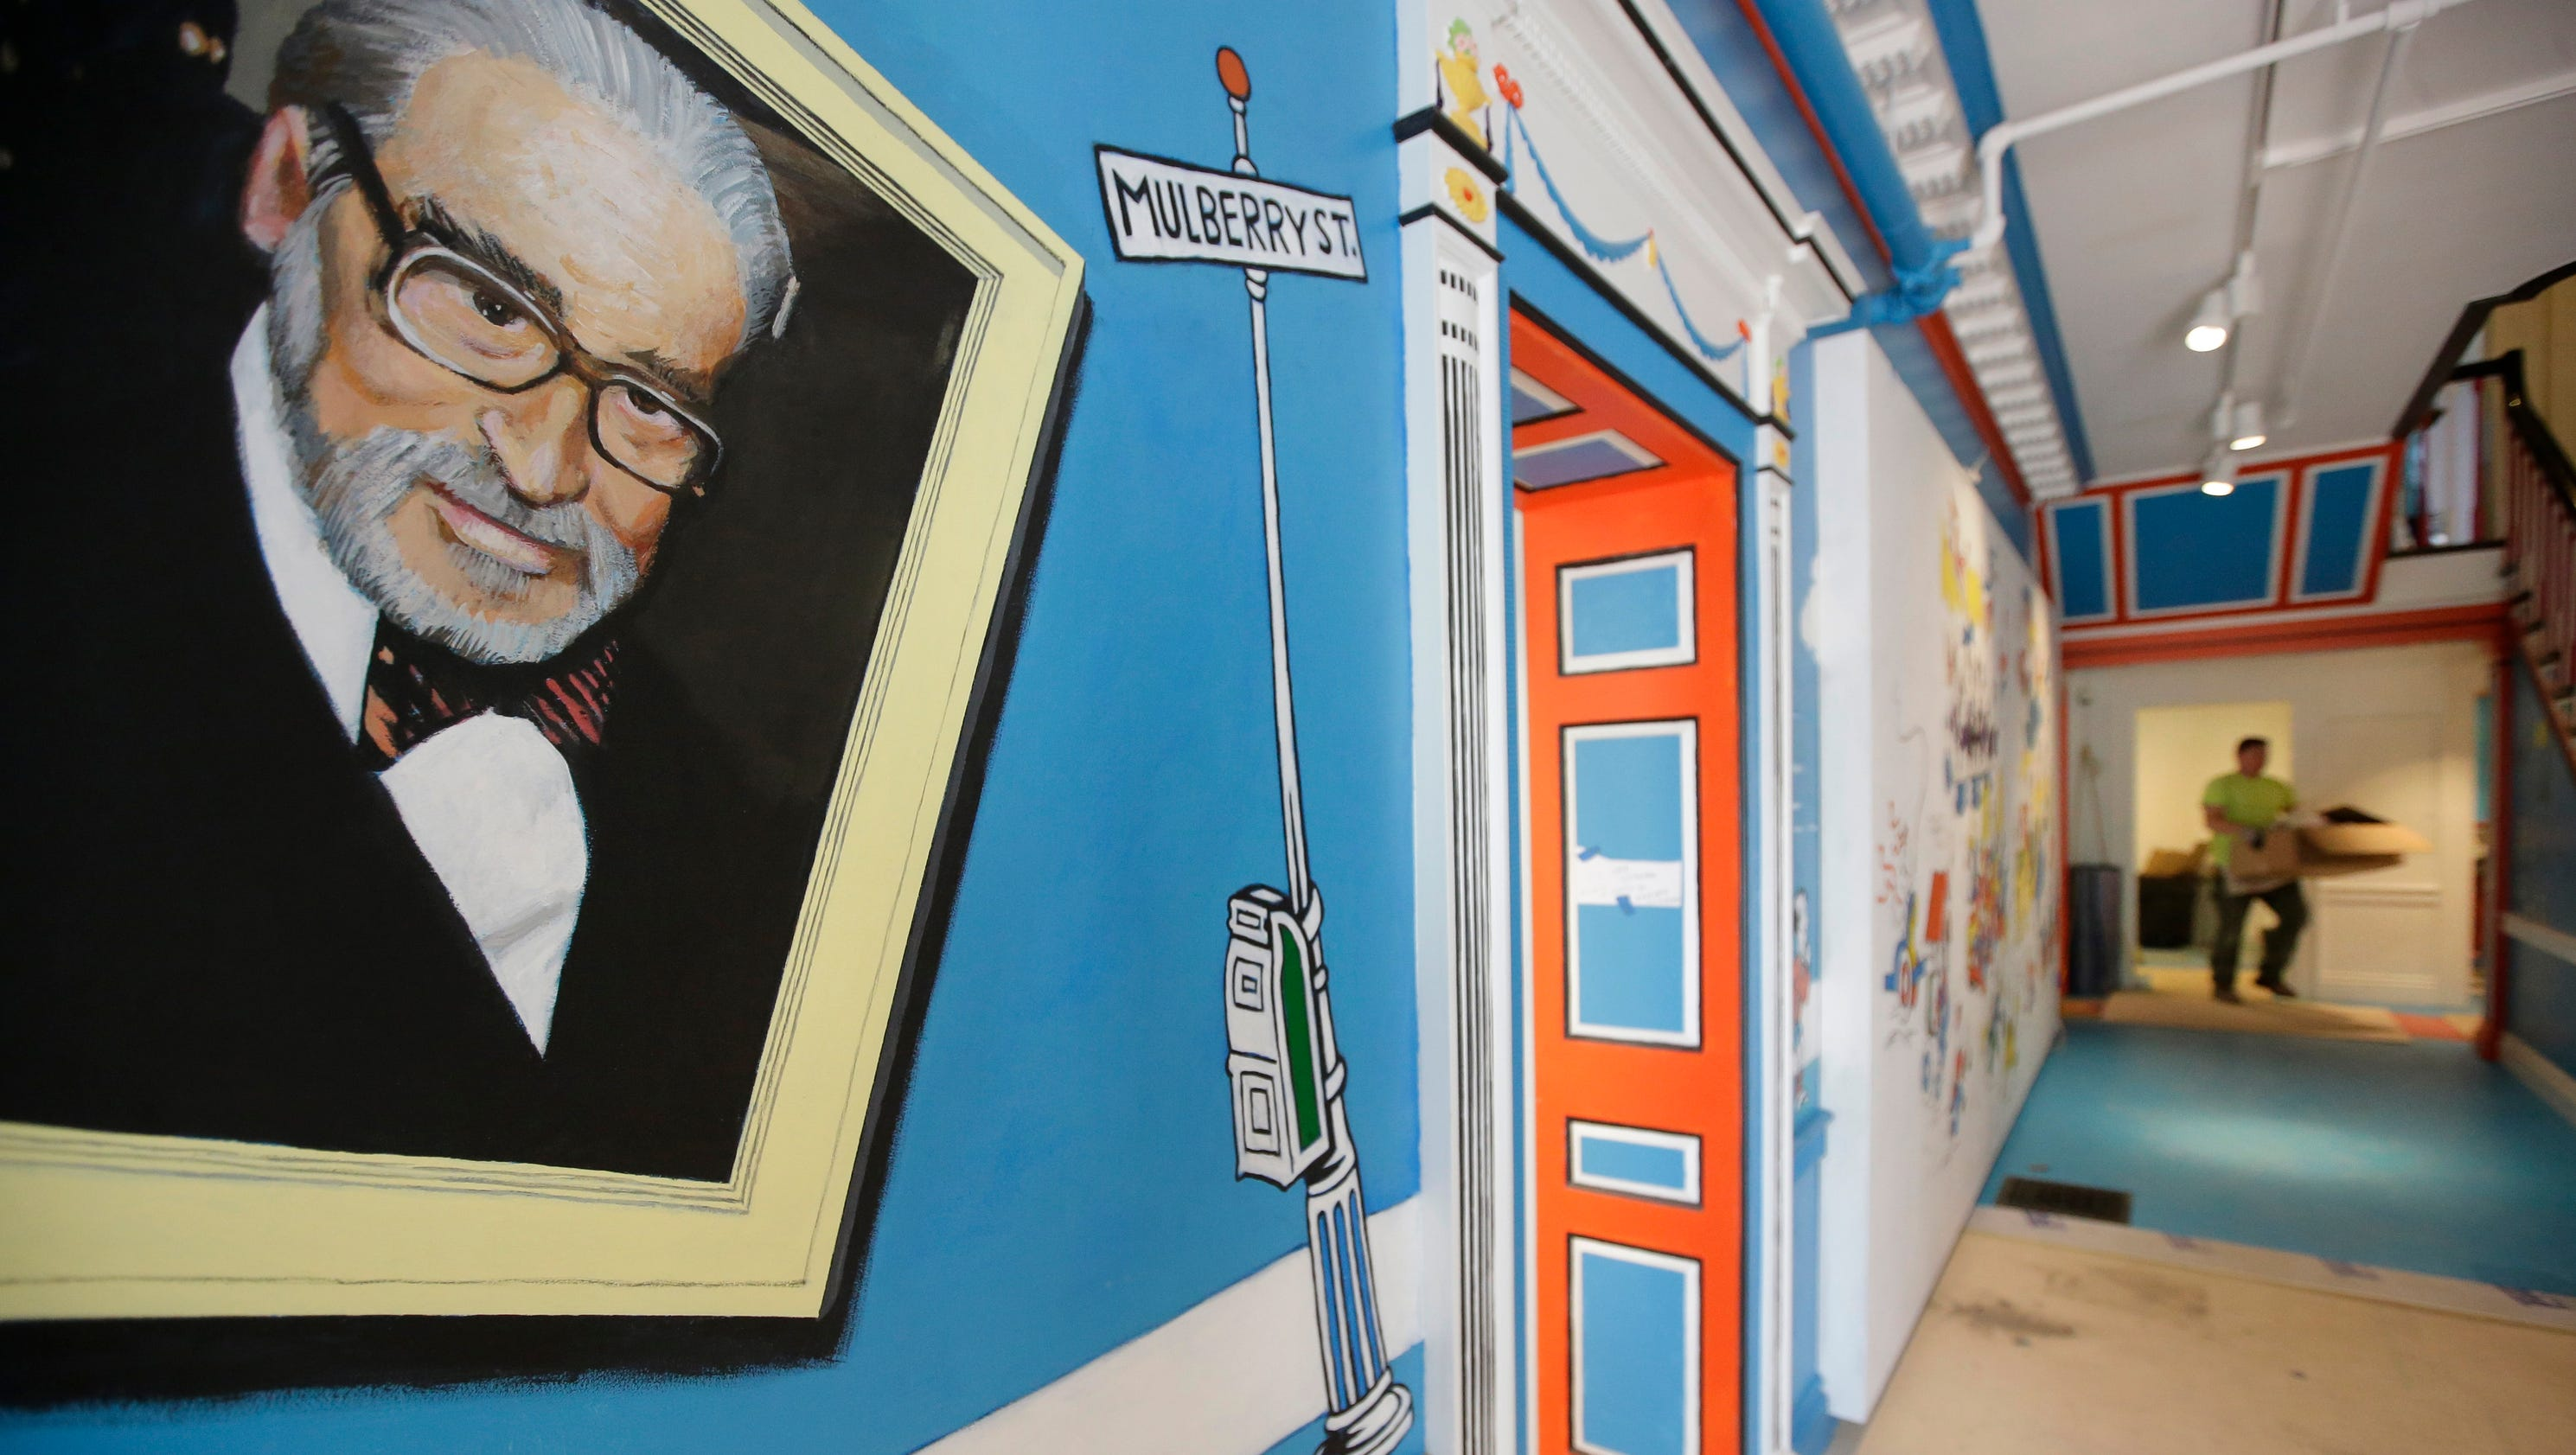 Dr seuss museum to replace mural after complaints of racism for Character mural